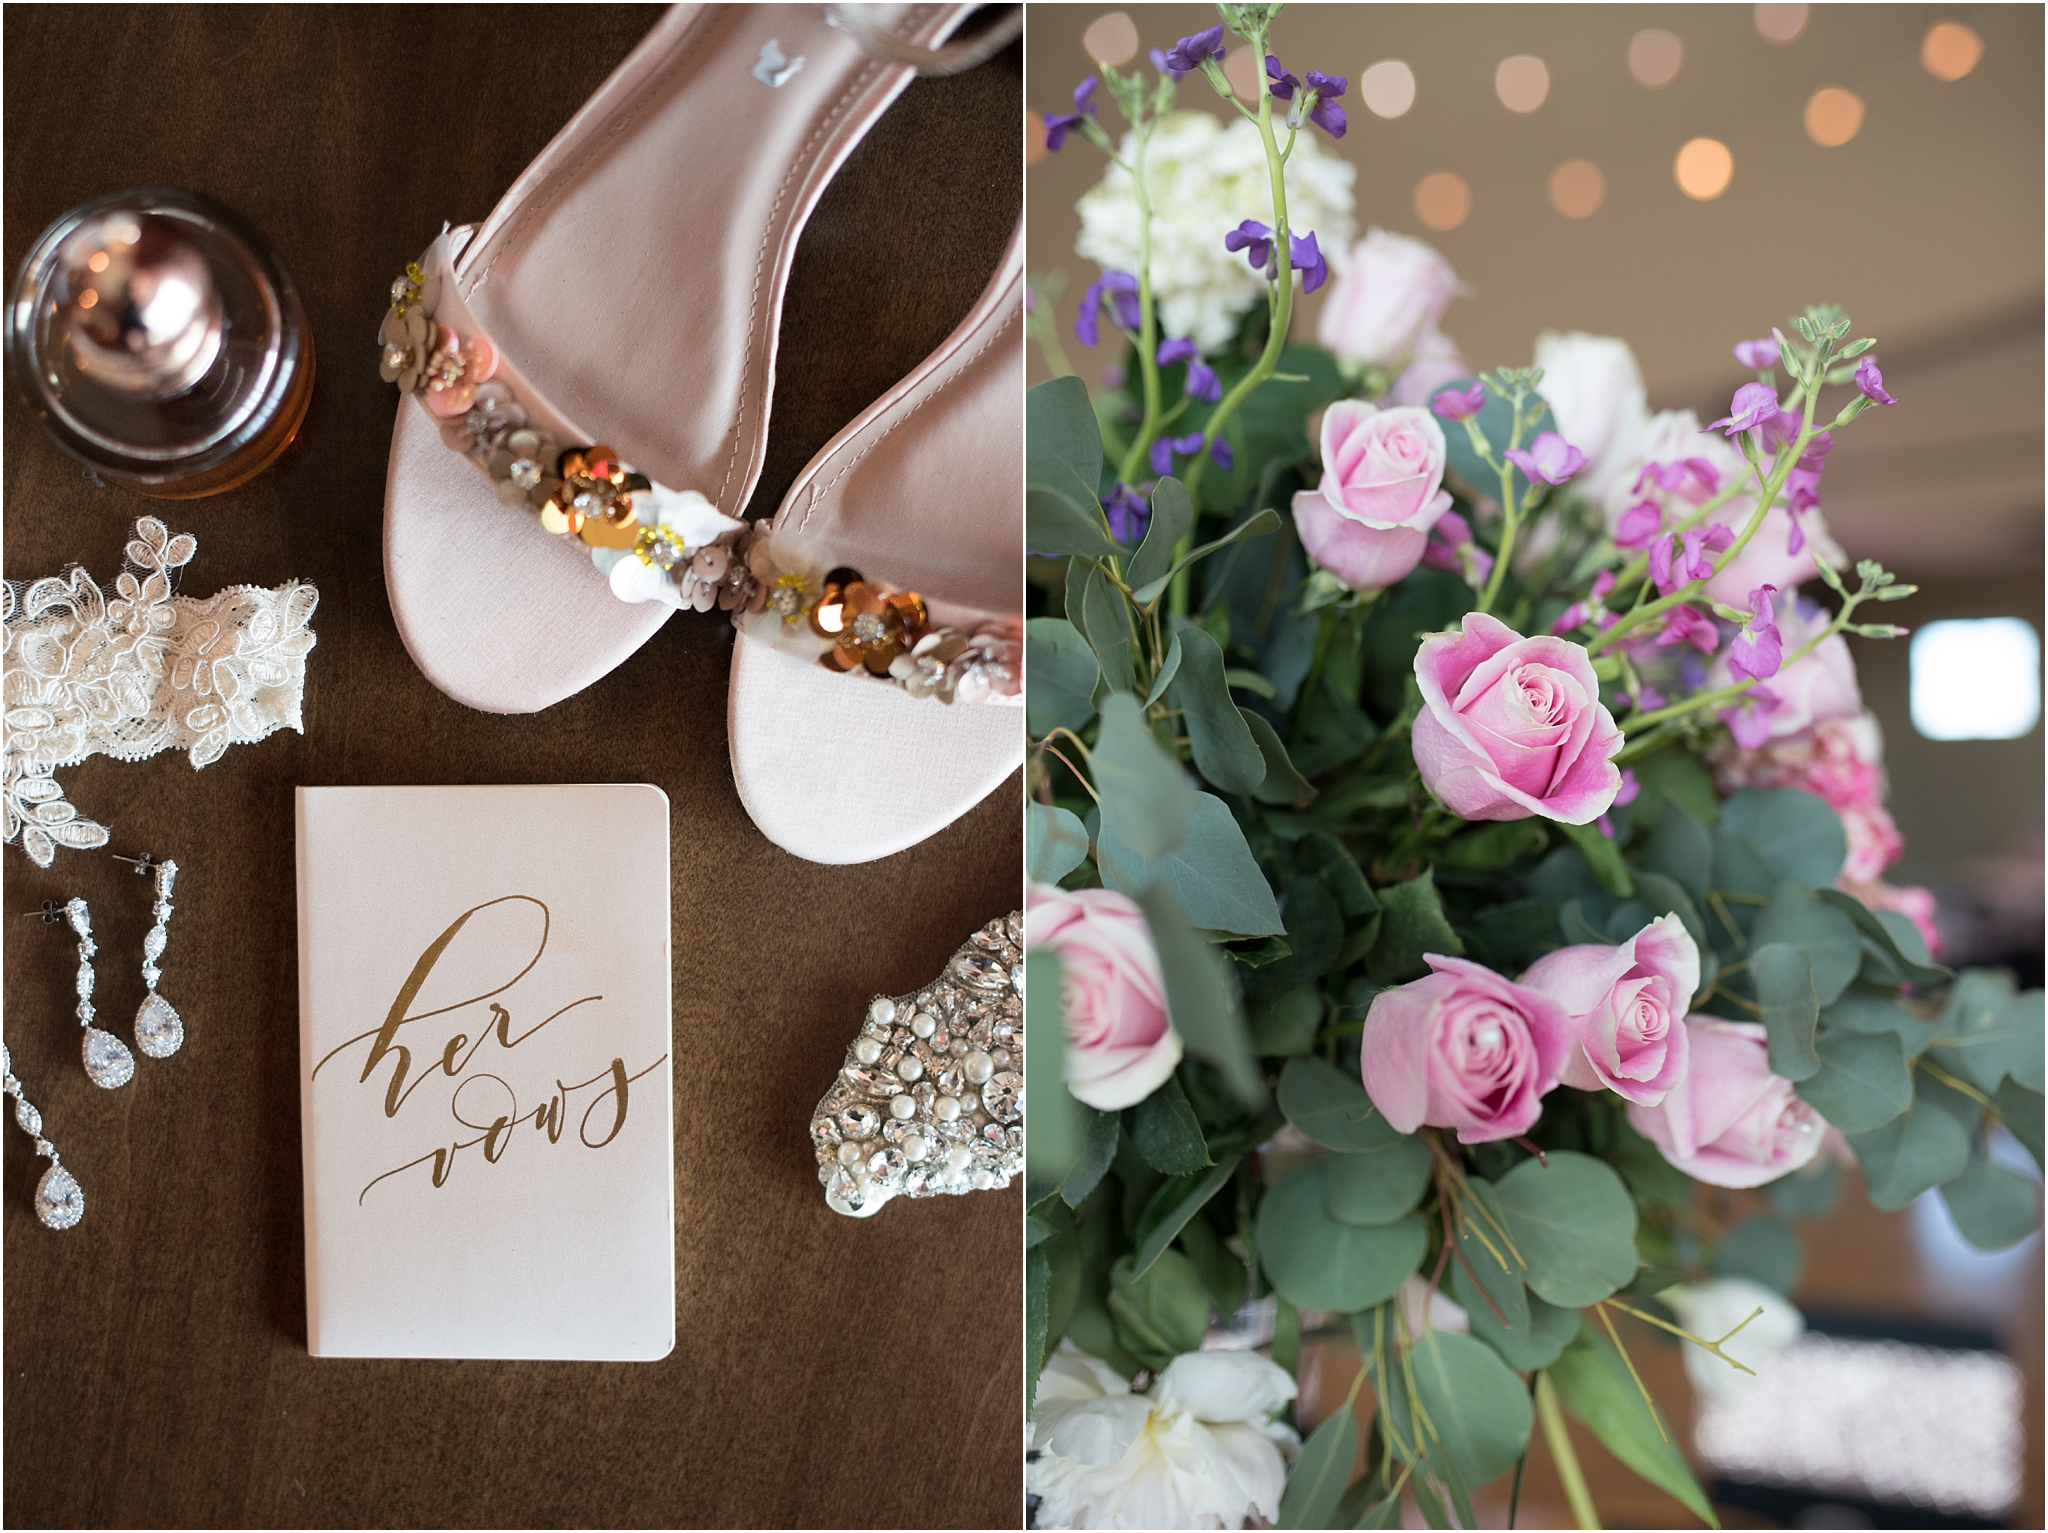 kayla kitts photography - new mexico wedding photographer - albuquerque botanic gardens - hotel albuquerque-casa de suenos_0226.jpg